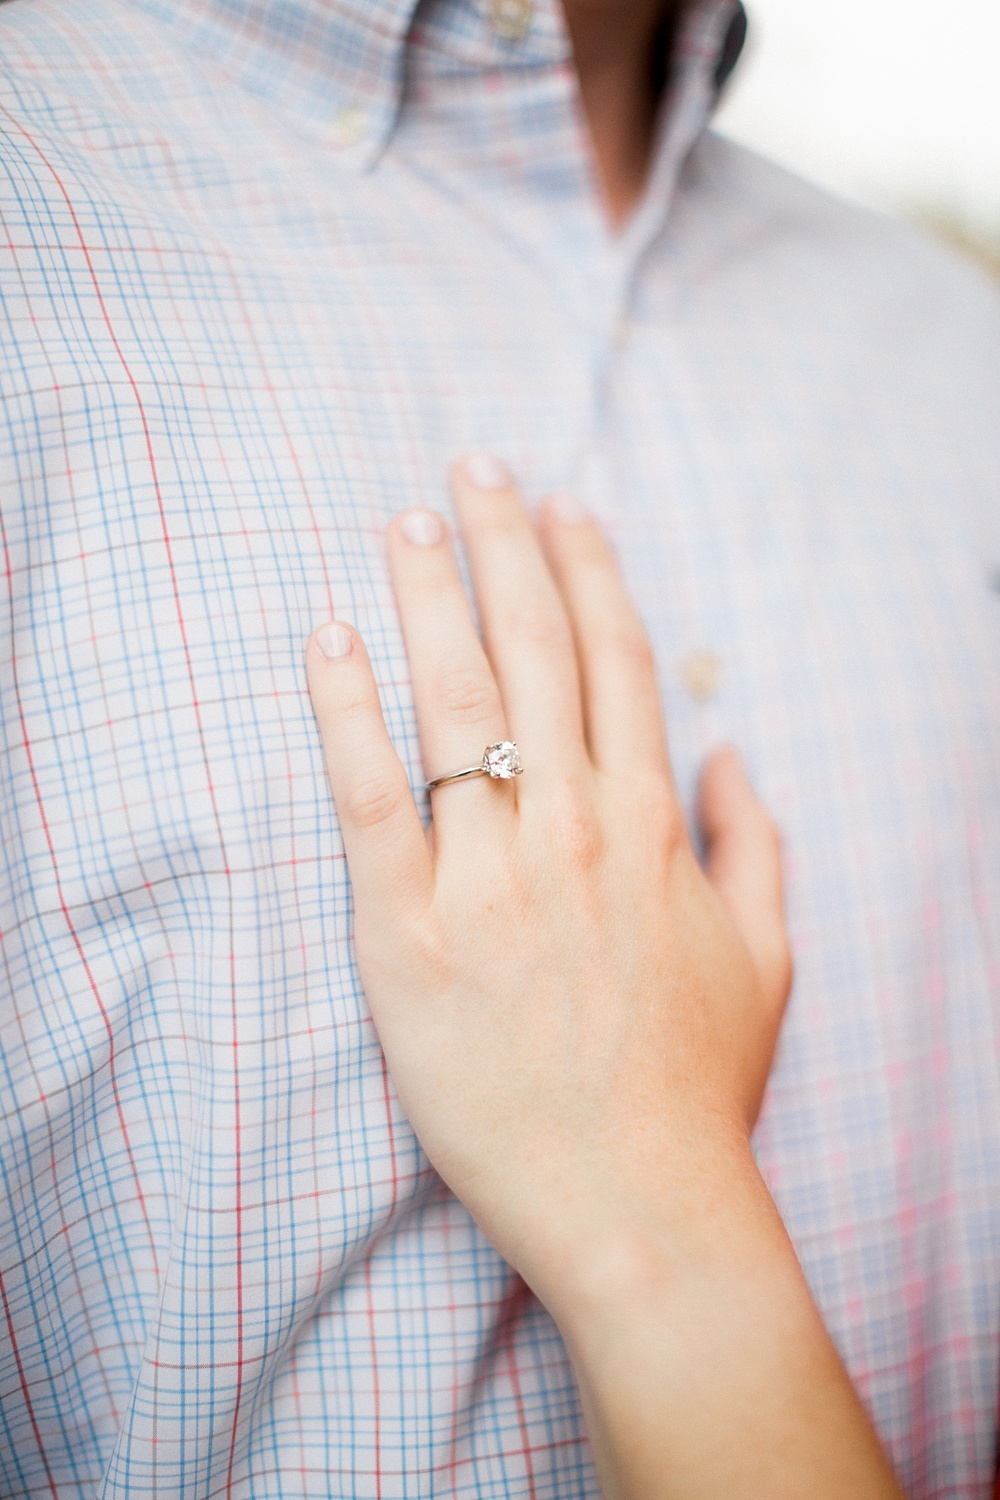 woman's hand with her classic solitaire engagement ring